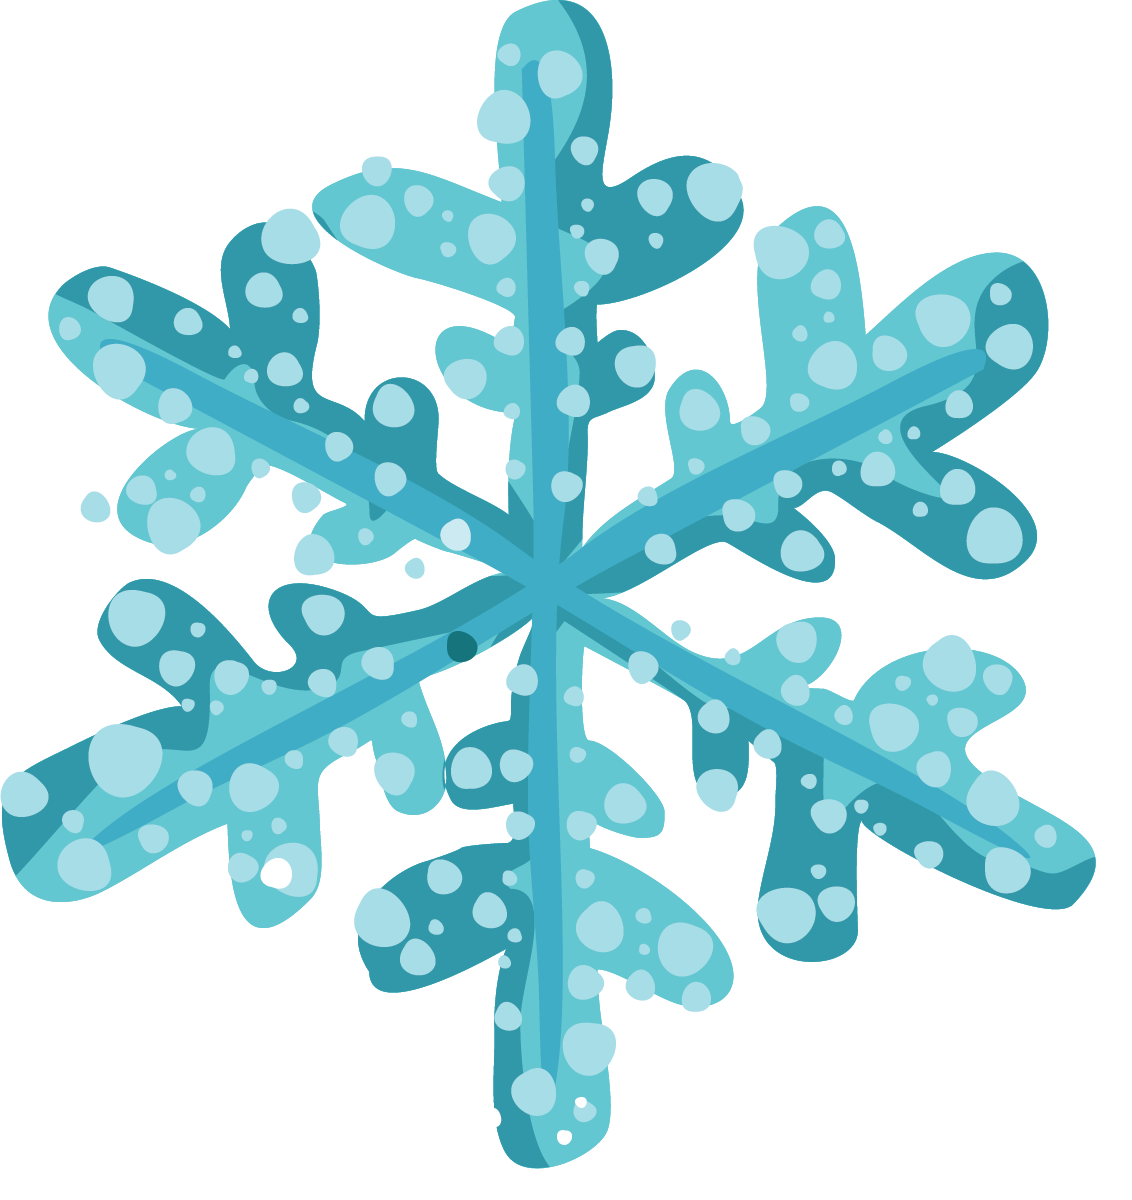 Moving clipart snowflake #7